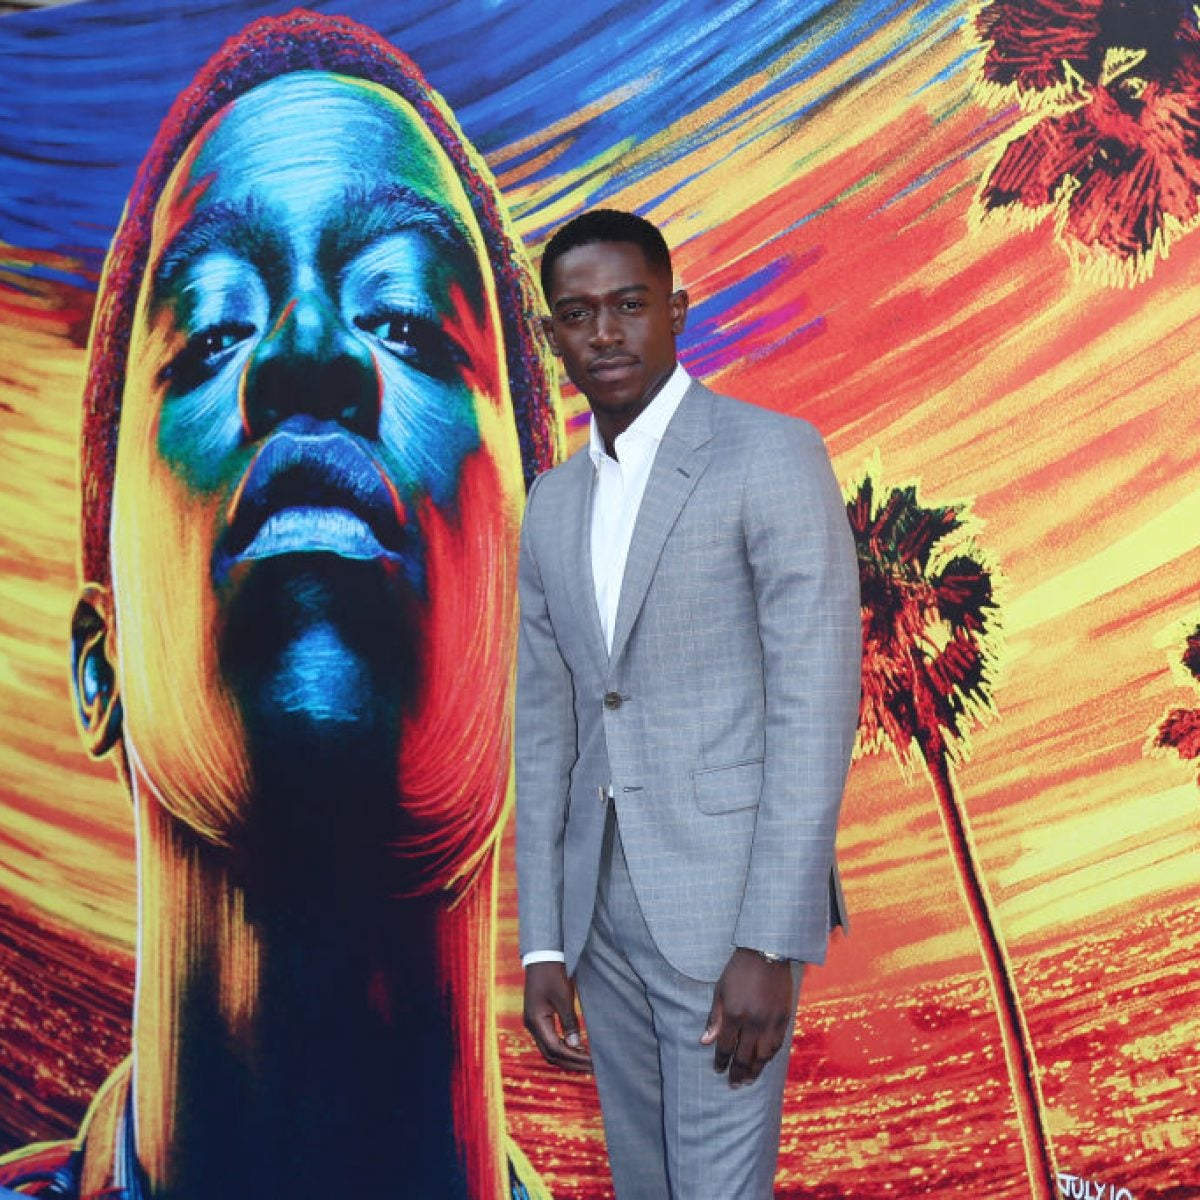 Don't Sleep on Damson Idris: The 'Snowfall' Star Talks Dream Roles And Enjoying The Ride To The Top